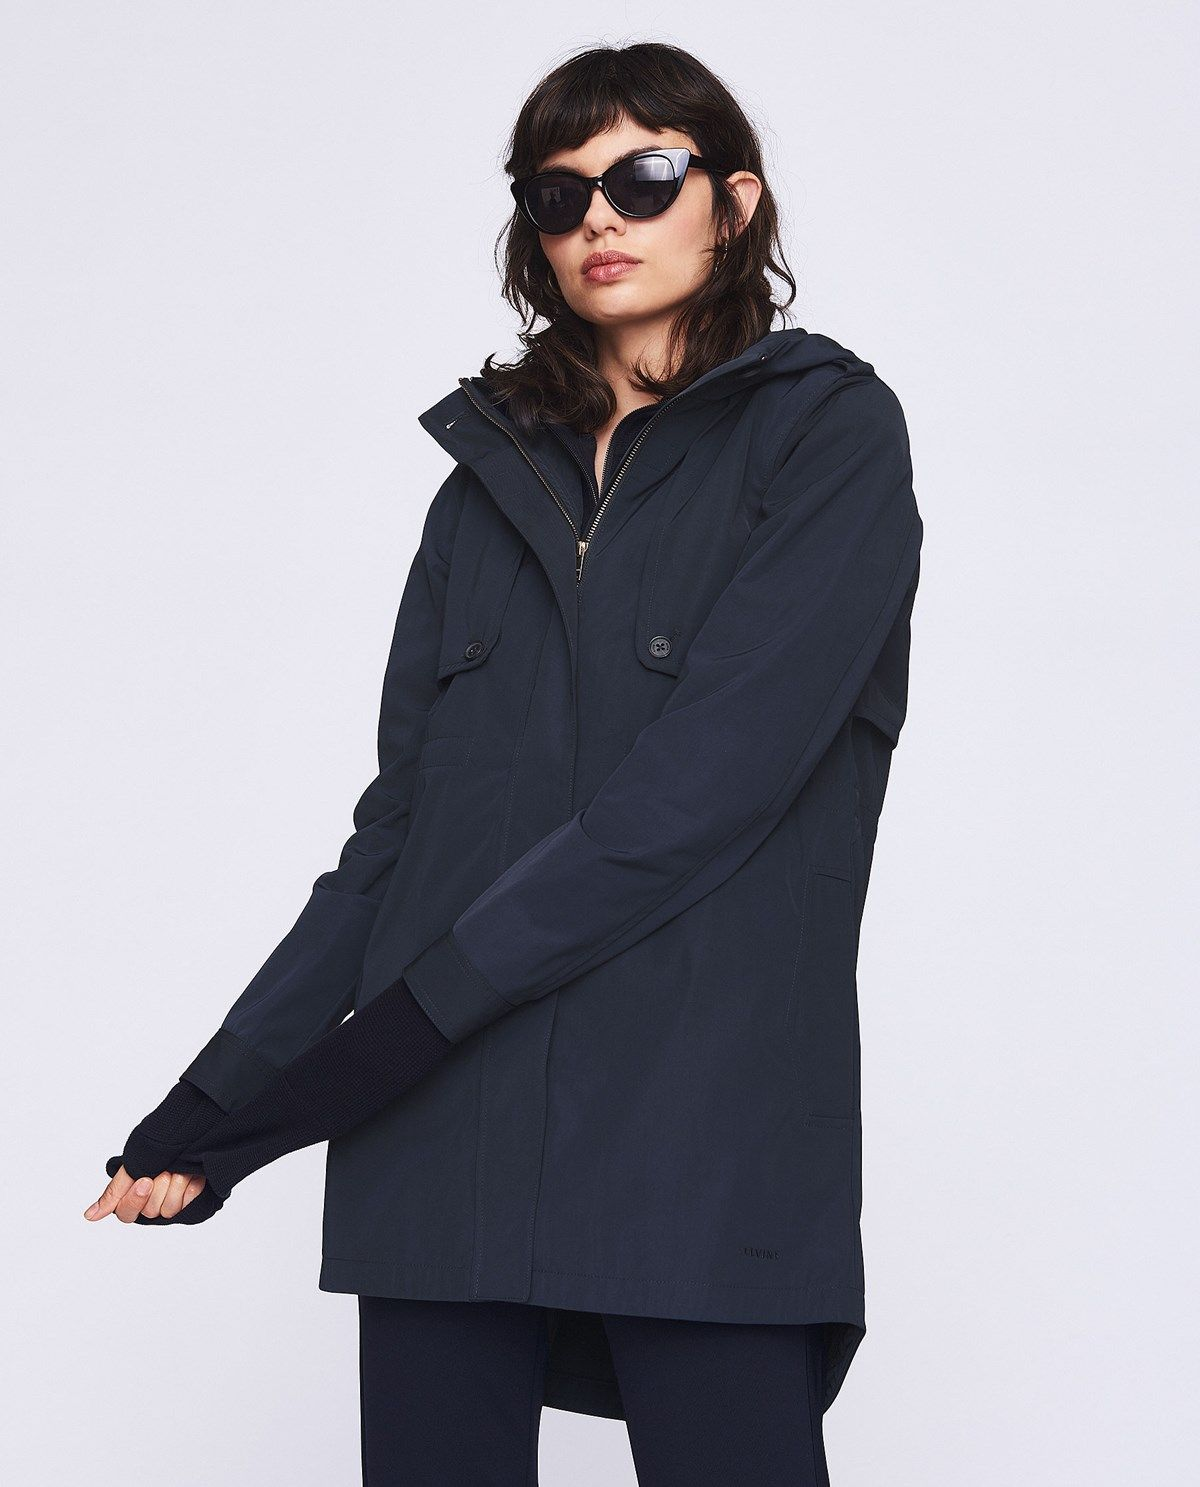 Brenda Dark Navy | Trench coats, Parkas, Catwalk